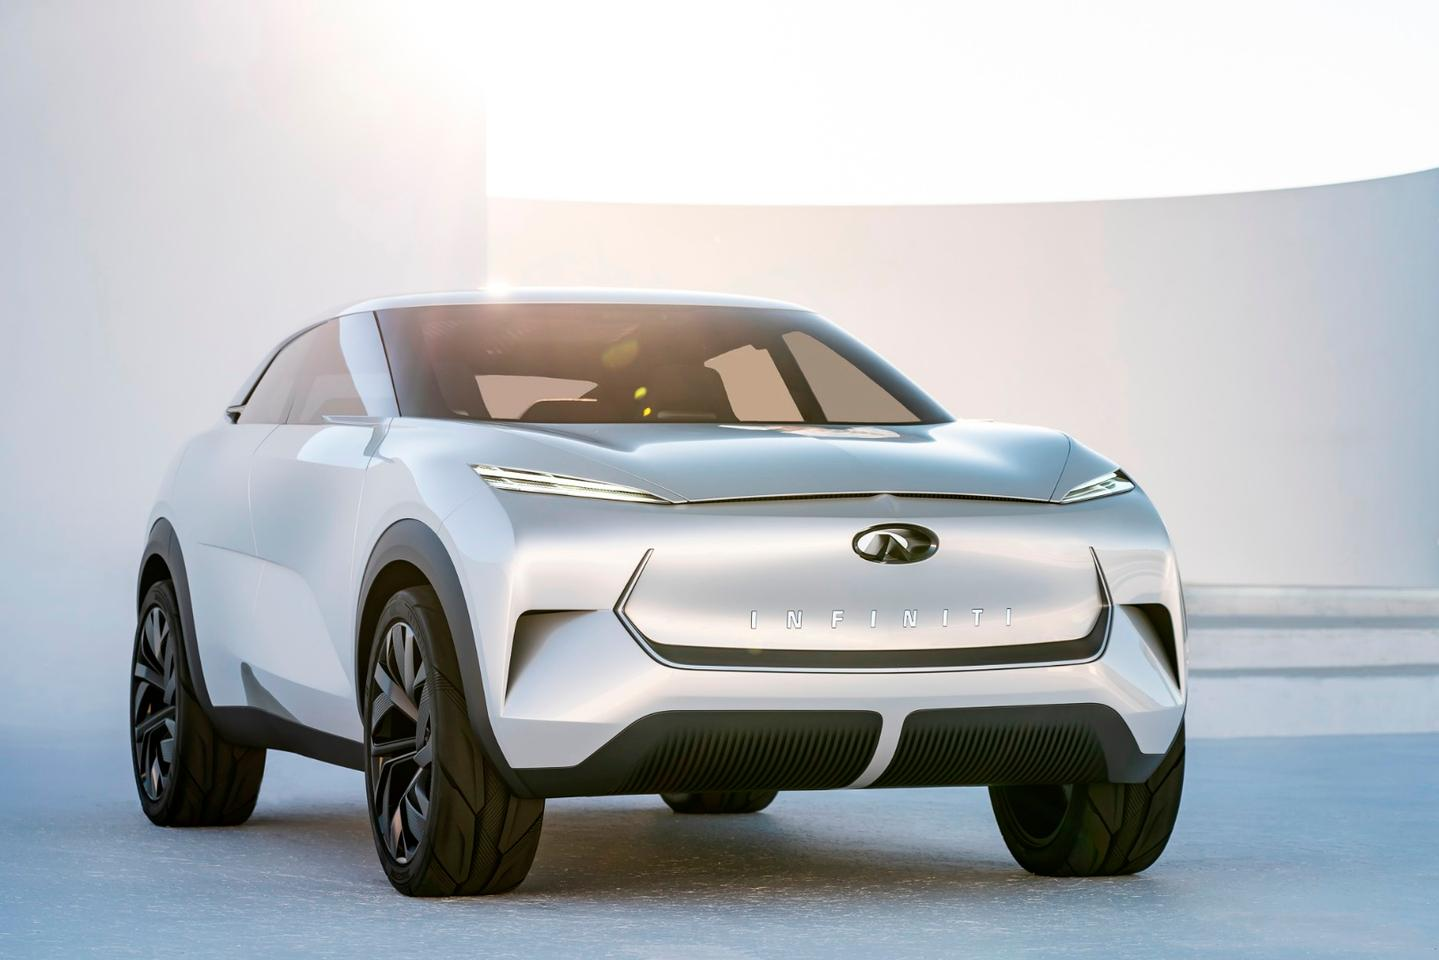 The design of the Infiniti QX concept is clearly contemporary with current crossover-SUVs on the road